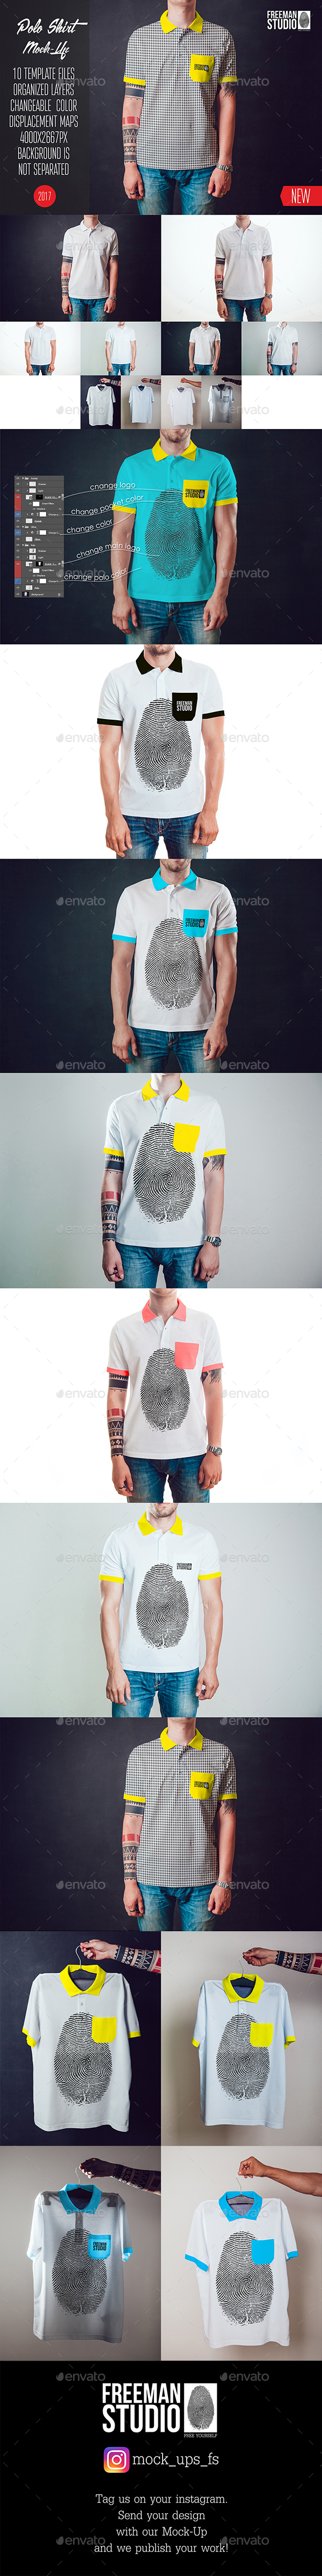 GraphicRiver Polo Shirt Mock-Up Vol.1 2017 20423026